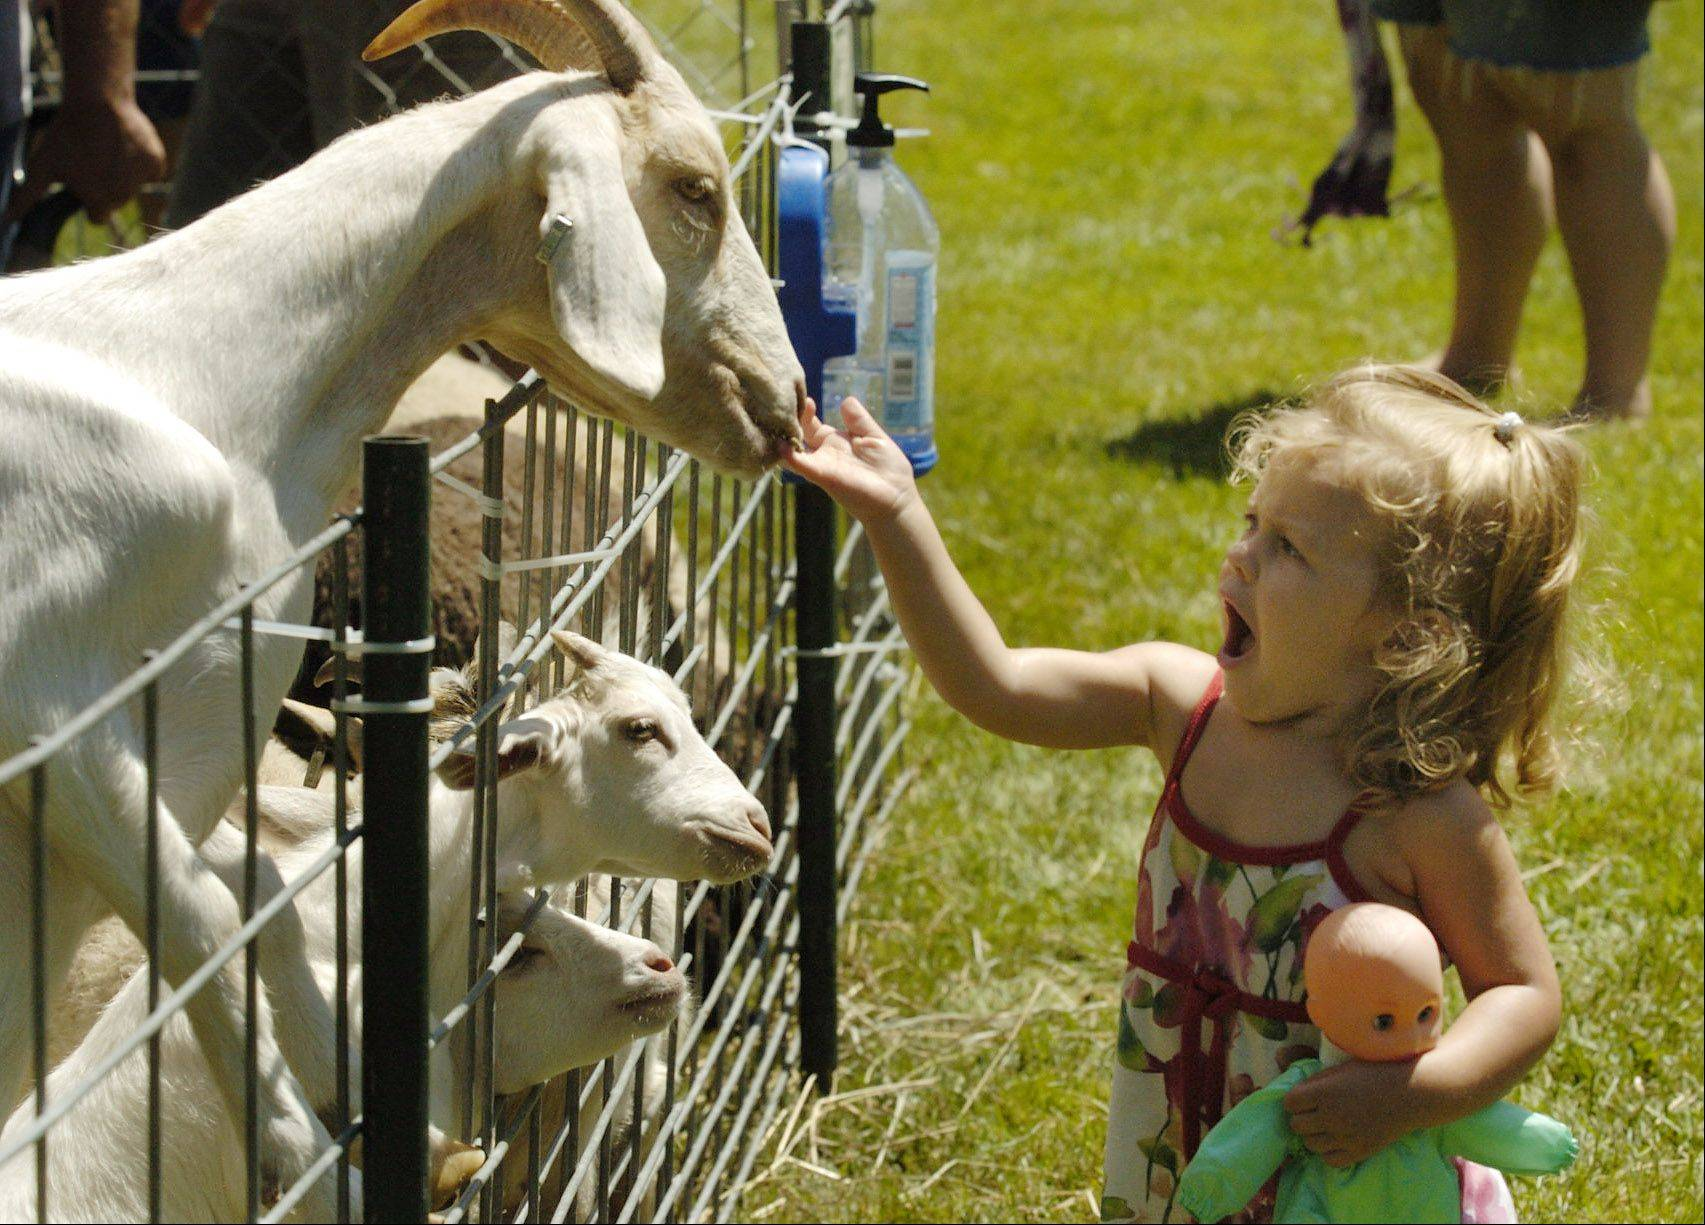 Emma McBreen, 2, of Algonquin doesn't care for the goats tasting her hand as she feeds them in the petting zoo at last year's Algonquin Founders' Days.